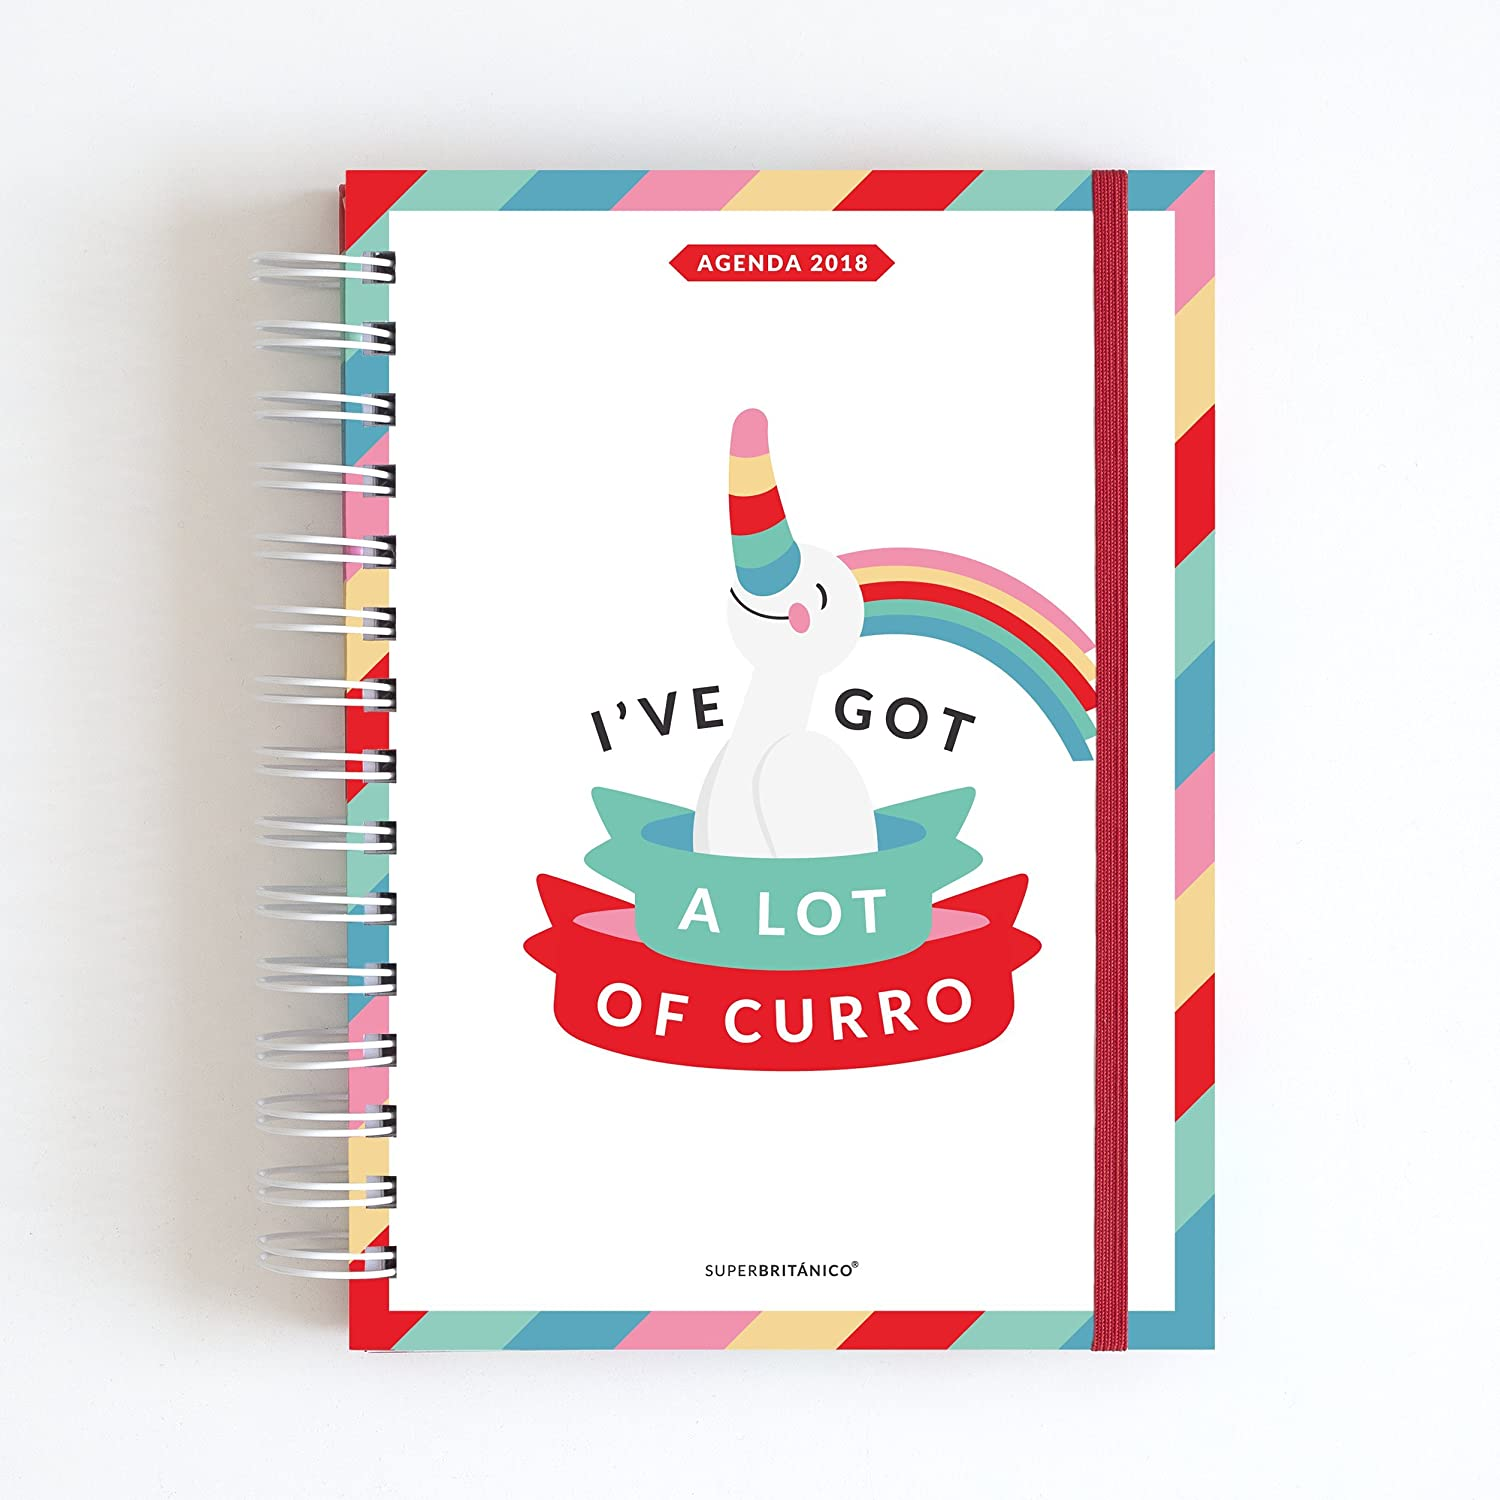 Agenda 2017-18 Superbritánico Ive Got a Lot of Curro ...